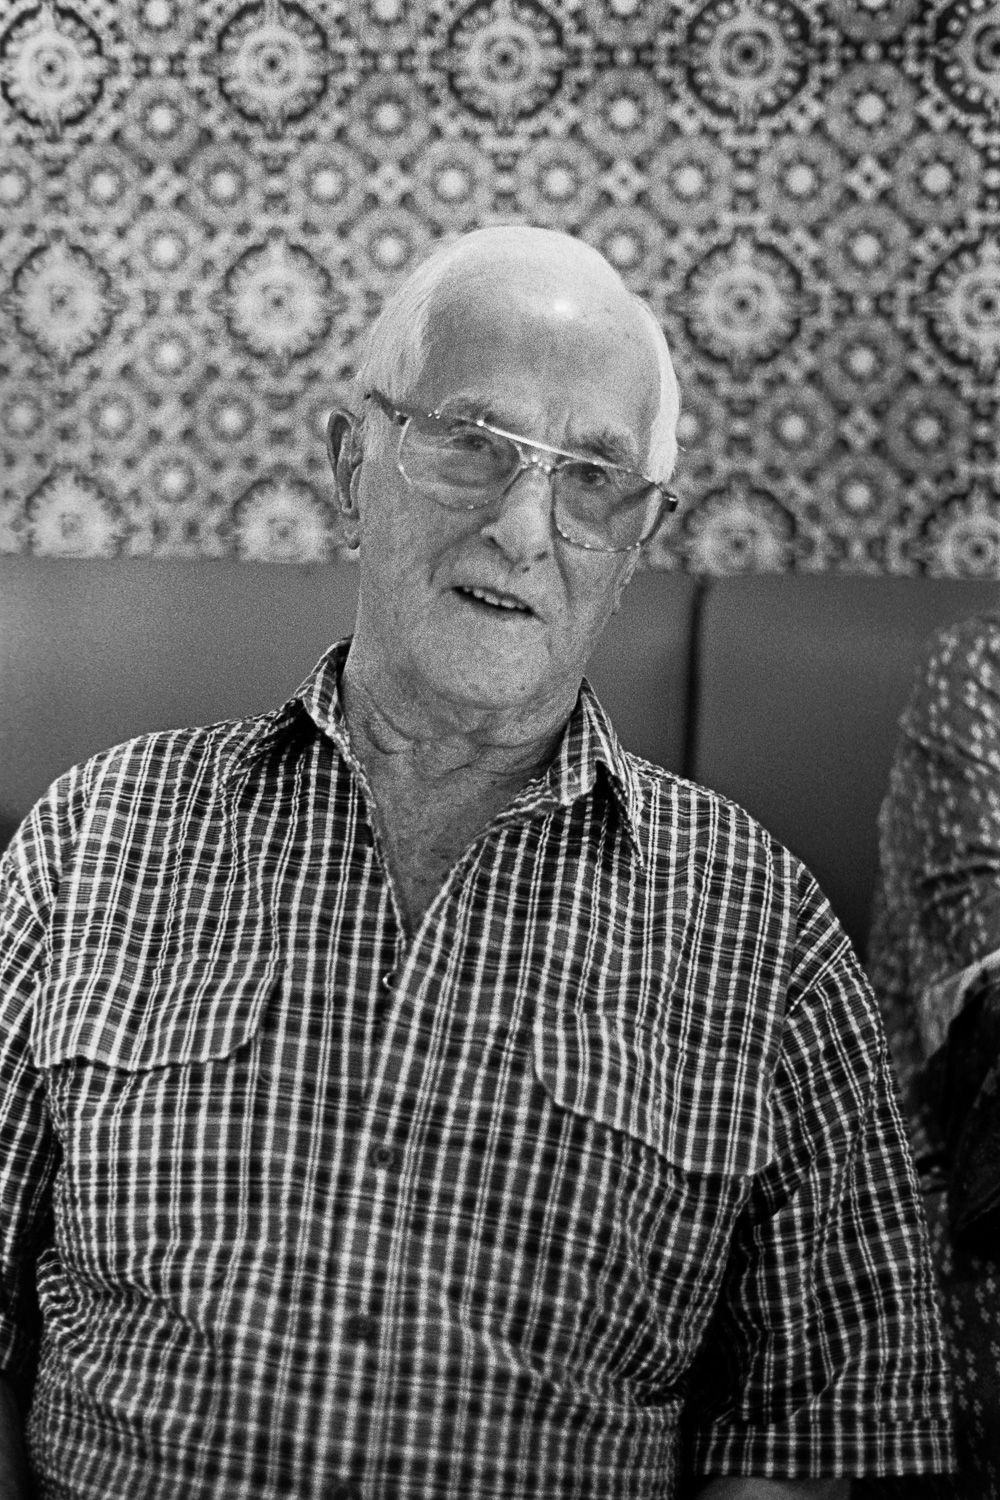 ROLL106AA017-Nick-Bedford,-Photographer-Black and White, Currumbin RSL, Film, Film Scanning, Granddad's 90th, Kodak Tri-X 400, Nikkor 50mm F1.8 AI-s, Nikon FA, Pakon F135+, Portrait, Rodinal, Summer.jpg